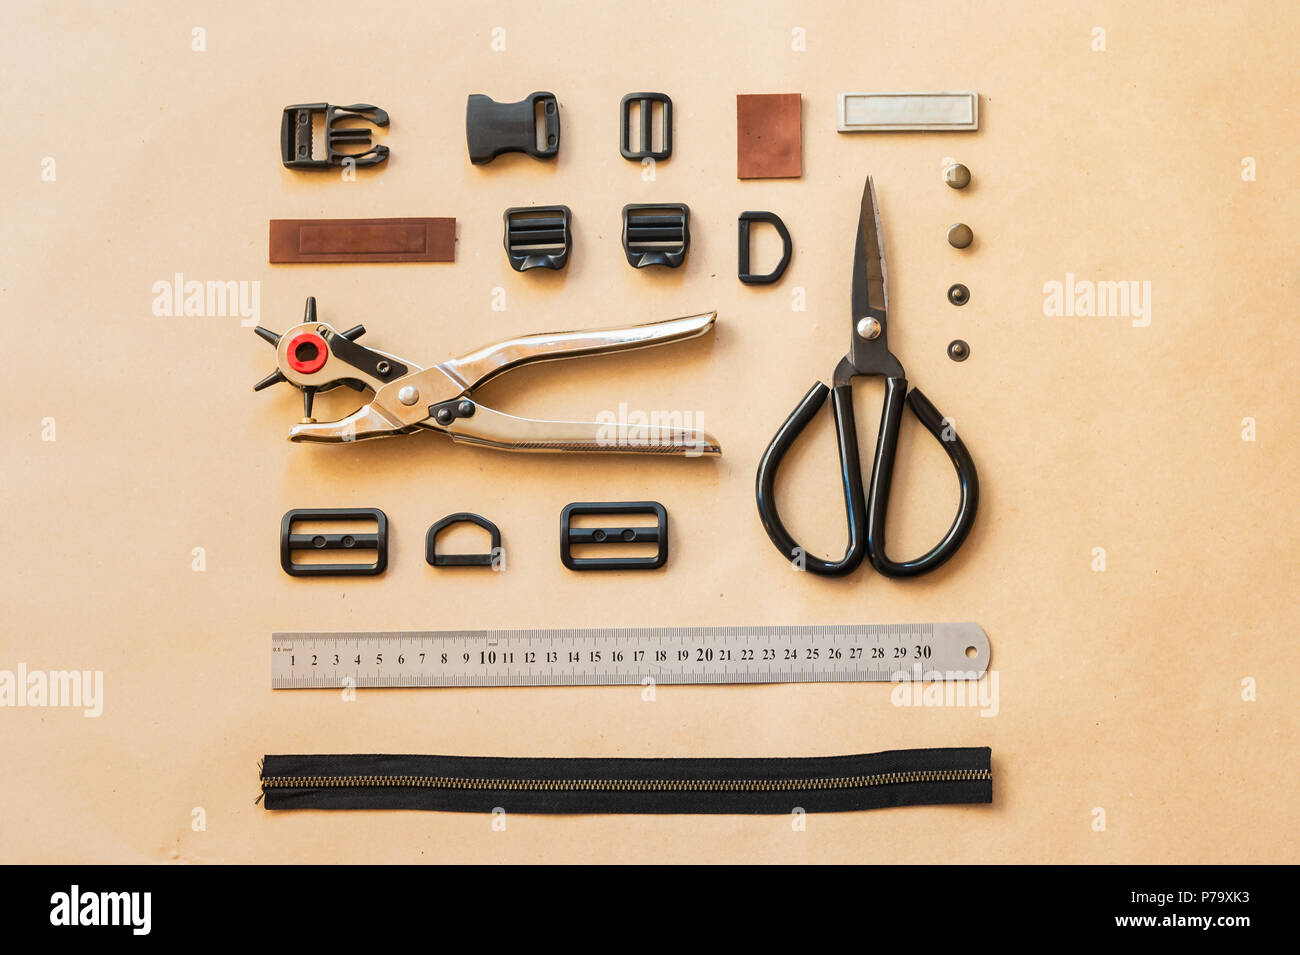 Flat lay of tools and accessories for bags of clothes making. - Stock Image